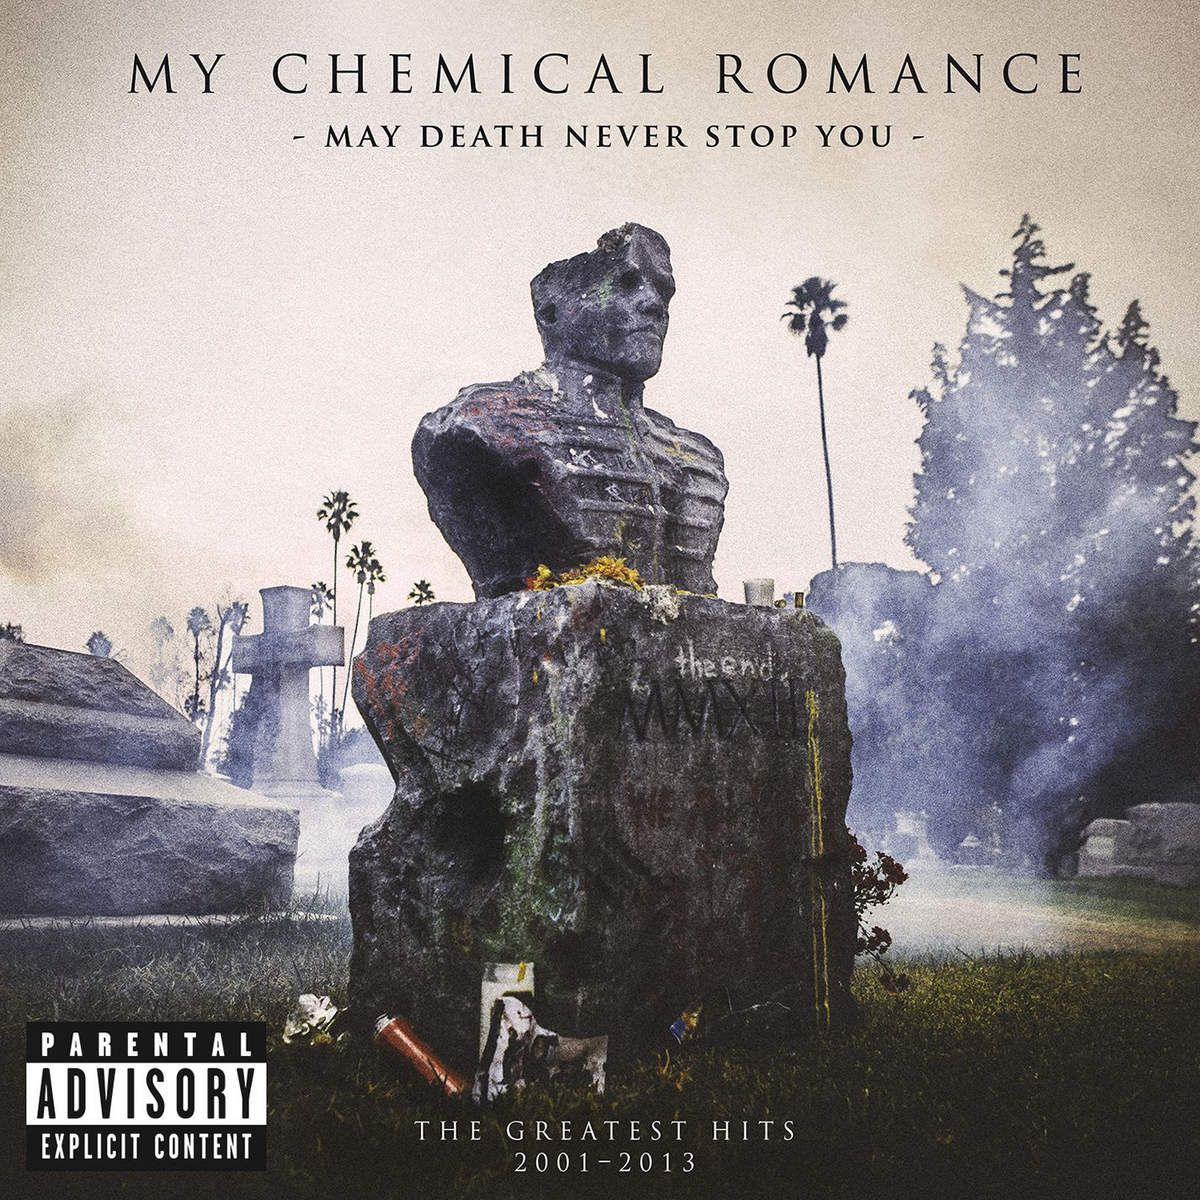 My Chemical Romance - May Death Never Stop You album cover